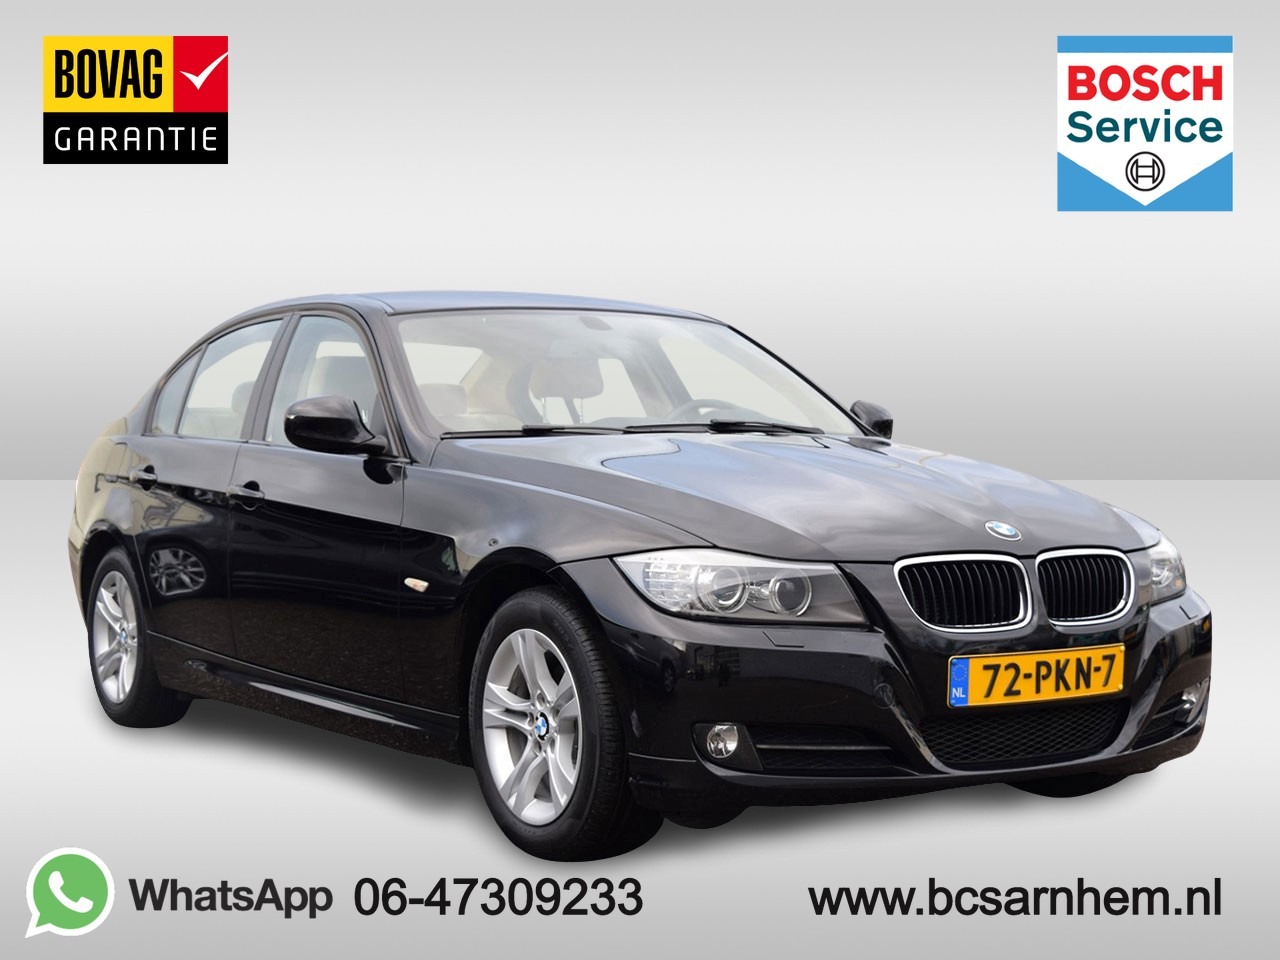 Bmw 3 serie 318i corp. lease. bus. line navi pdc clima xenon 177dkm